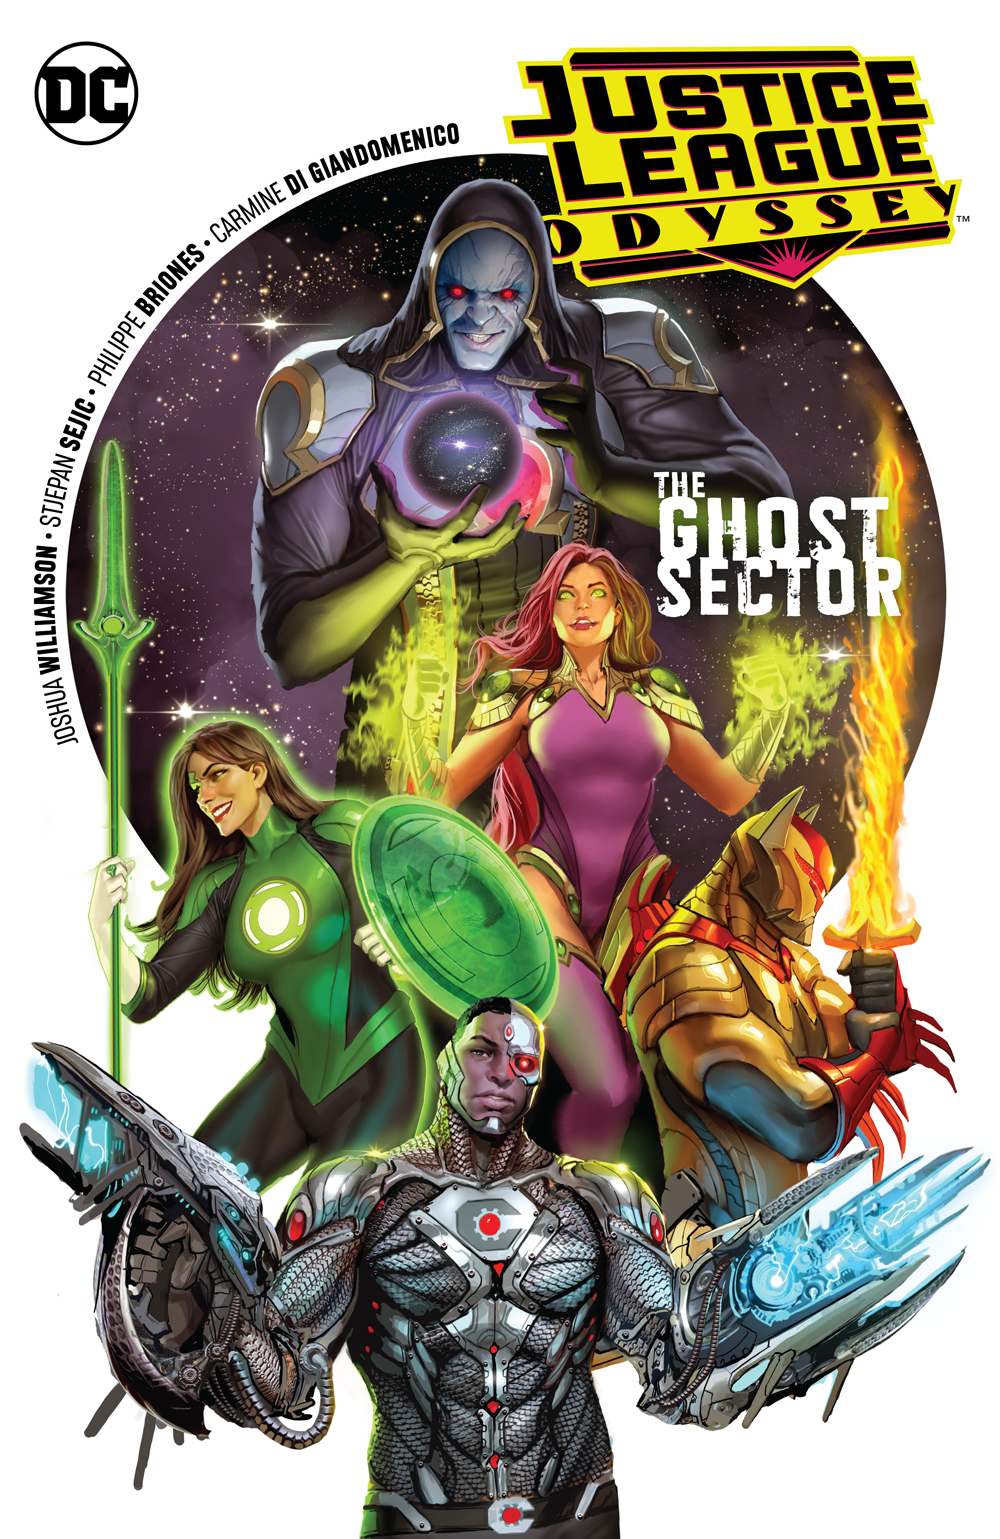 JUSTICE LEAGUE ODYSSEY TP VOL 01 THE GHOST SECTOR